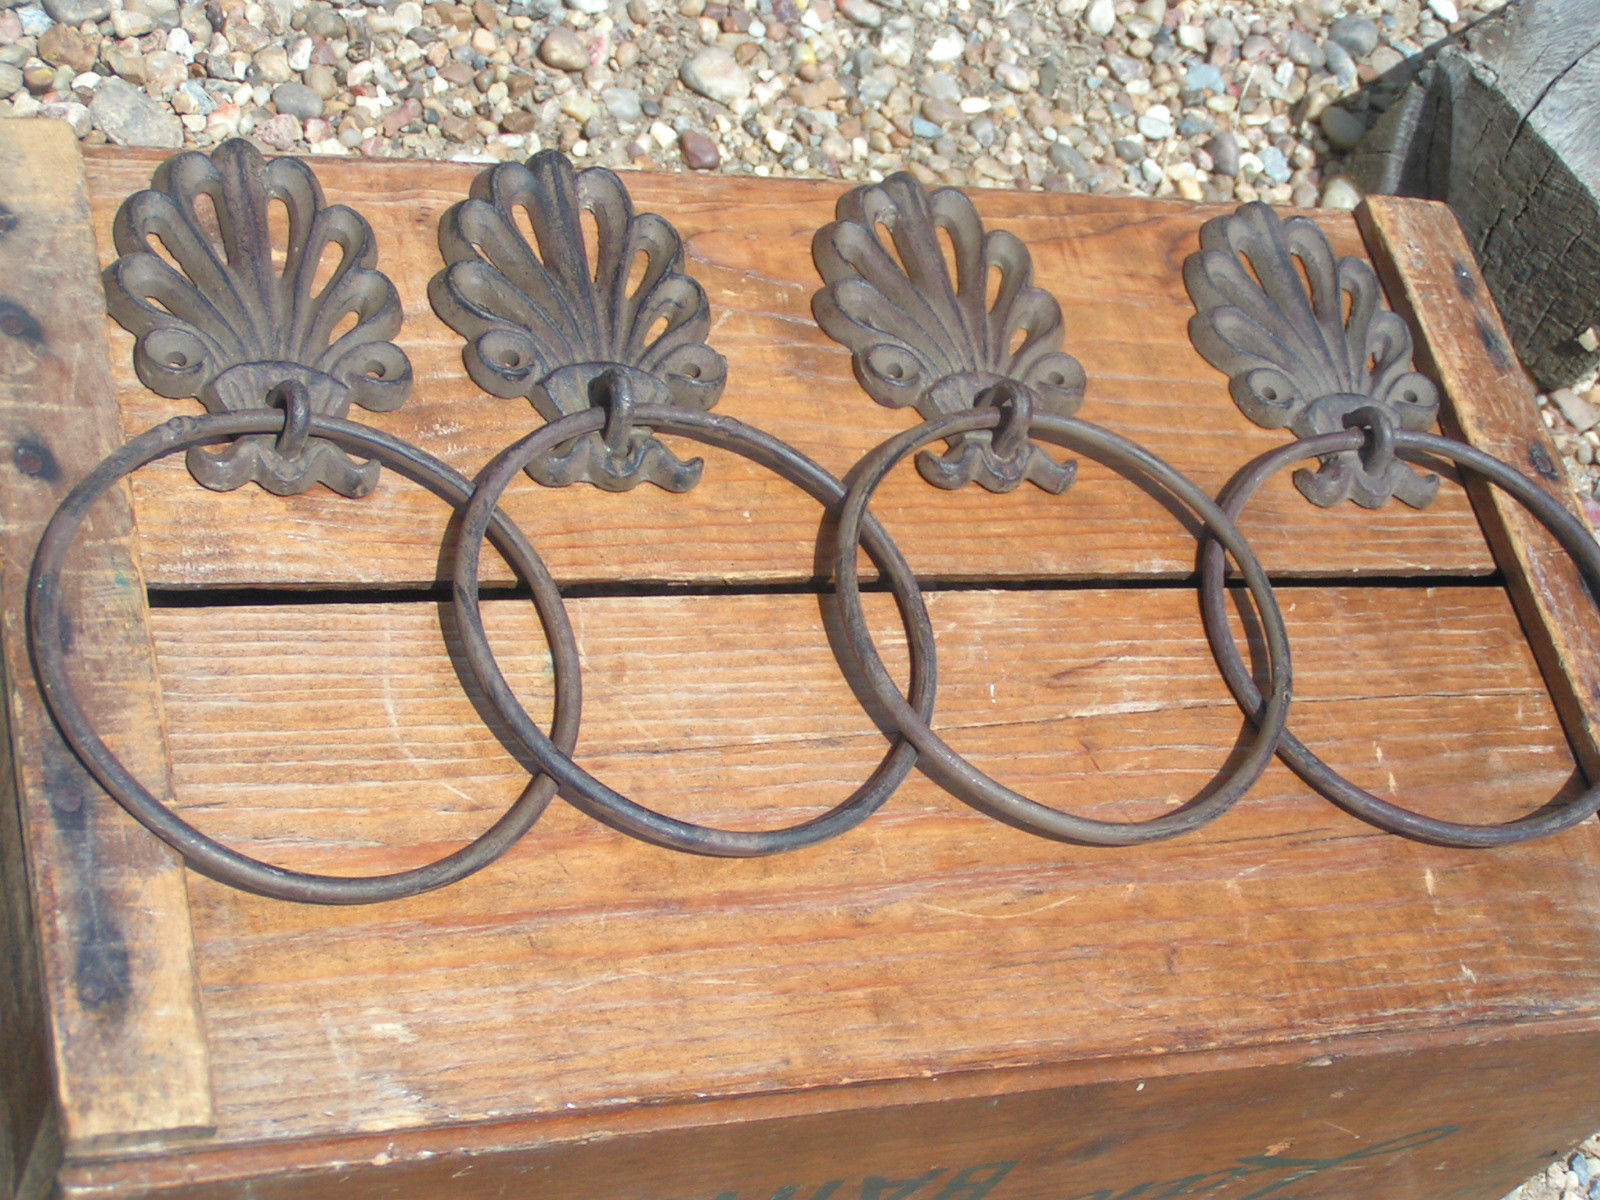 Primary image for FOUR Cast Iron Bath Wall Hang Rings Curtain Tie backs bz